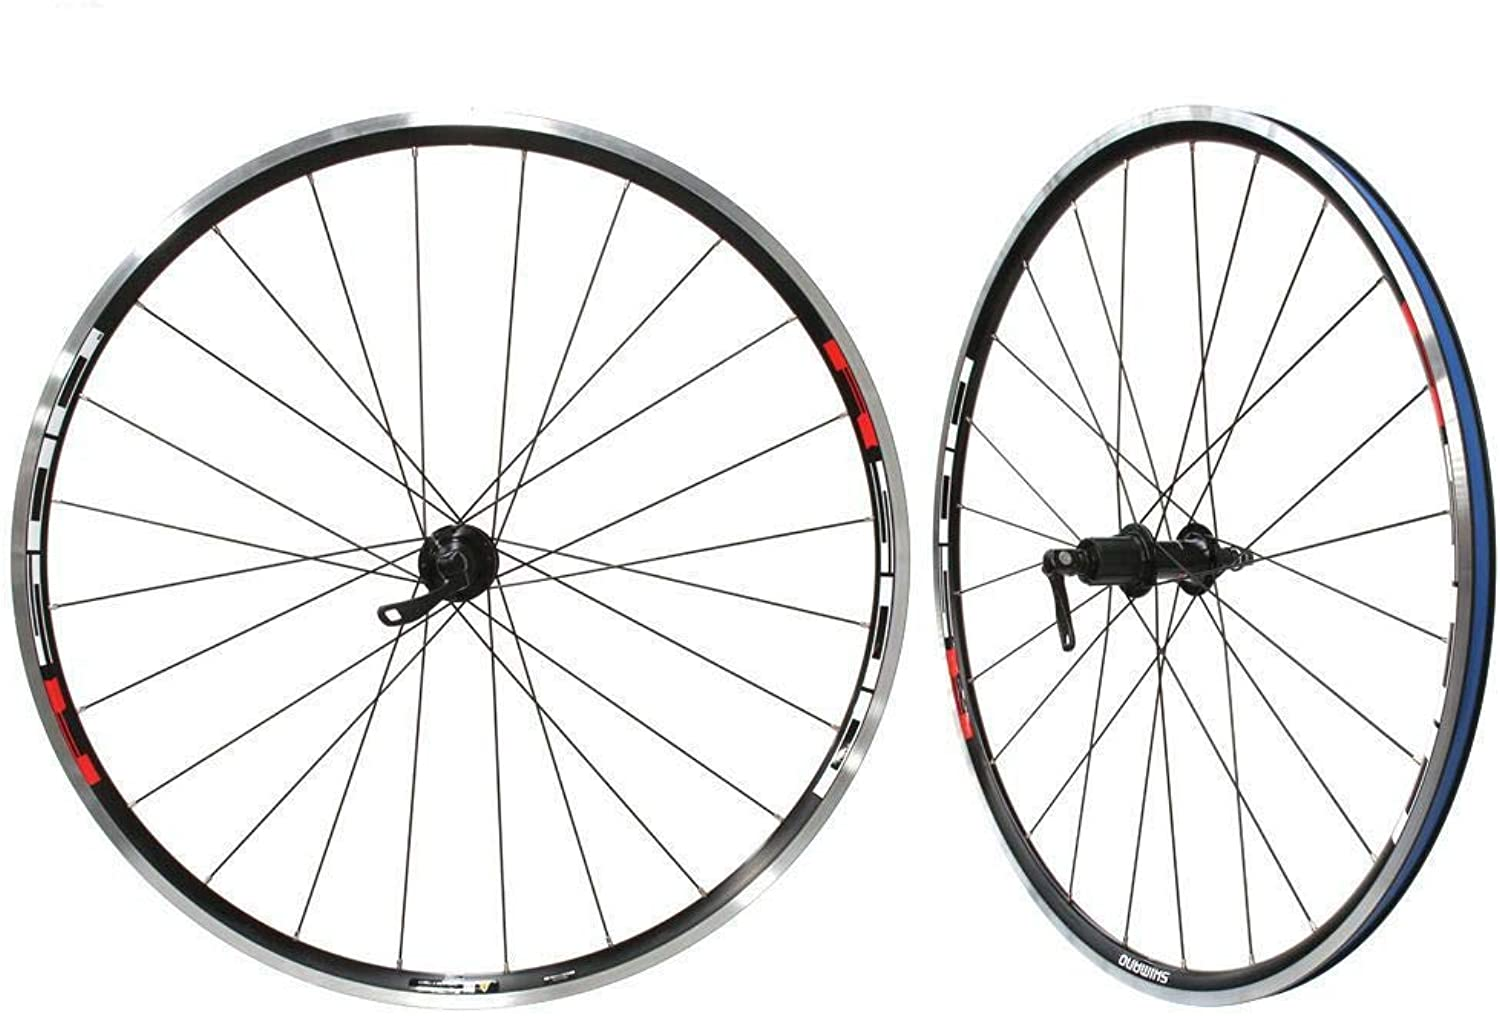 2017 SHIMANO Road Bike Wheels Wheelset WHR501